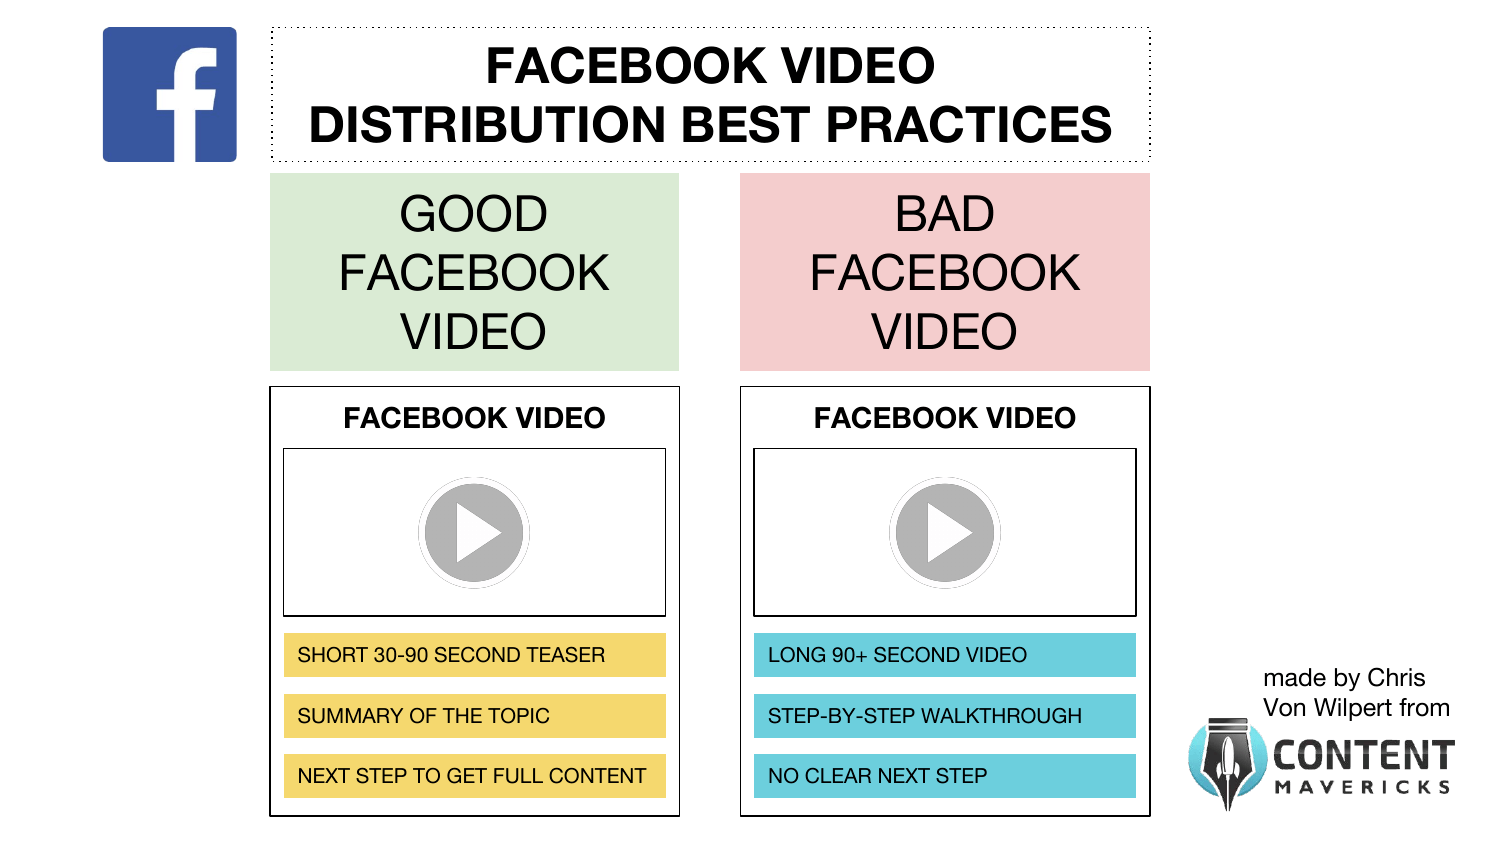 facebook video content distribution best practices image